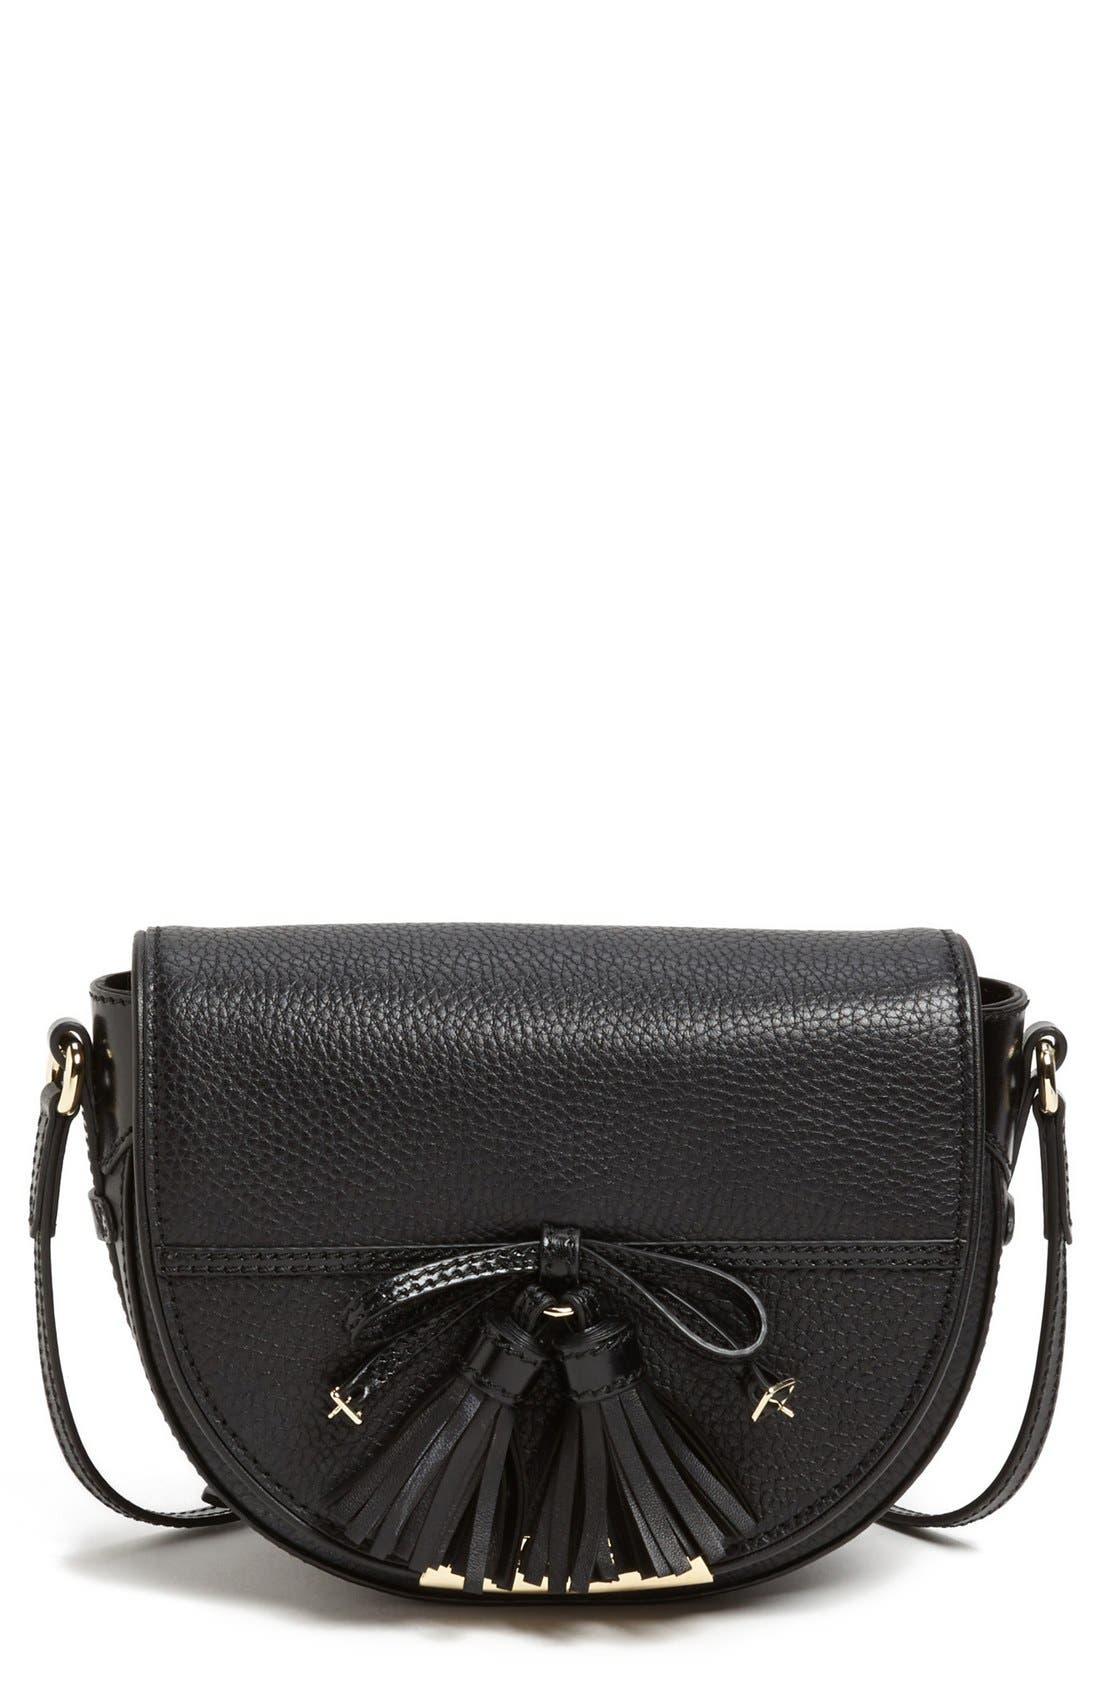 Main Image - Burberry 'Maydown' Leather Crossbody Bag